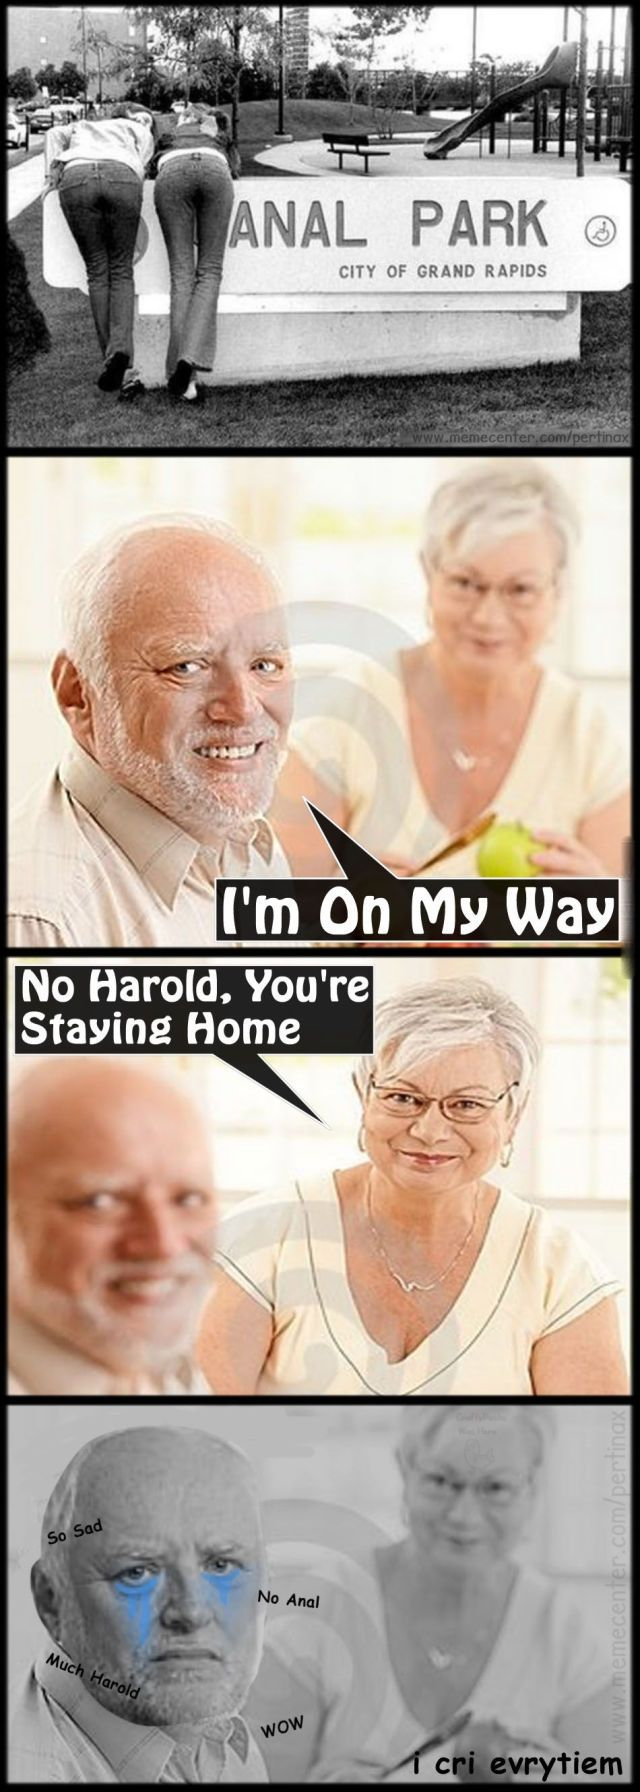 anal park, i'm on my way, no harold we're staying home, so sad, no anal, i cry evrytiem